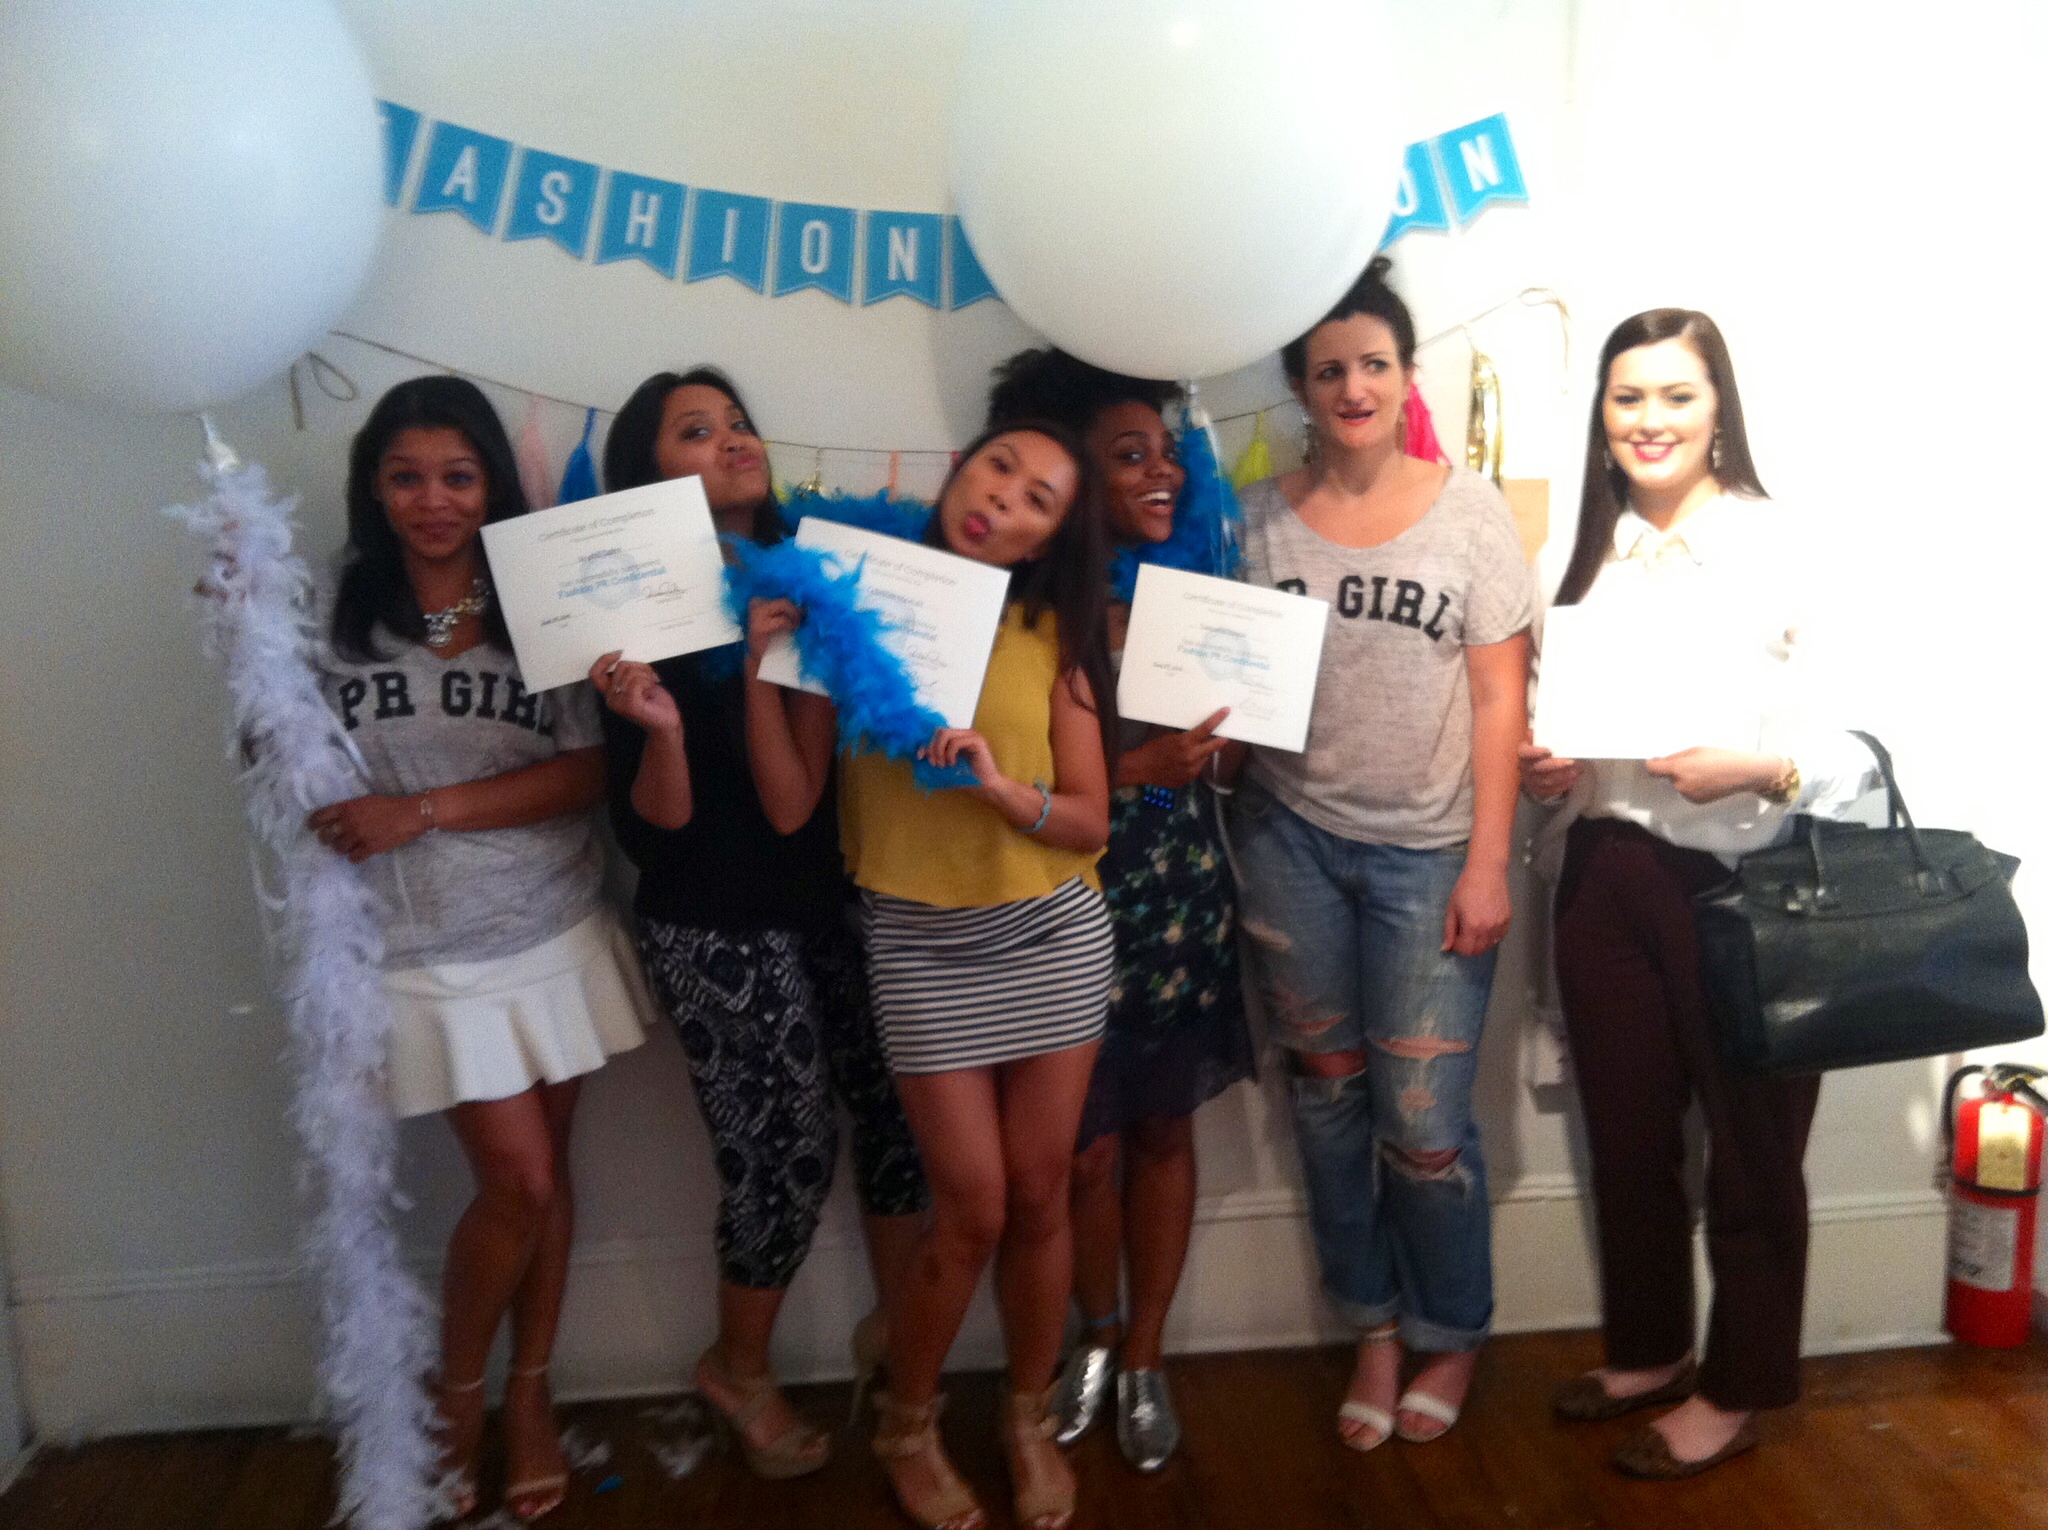 Some of our Fashion PR Con graduates being silly with Crosby!